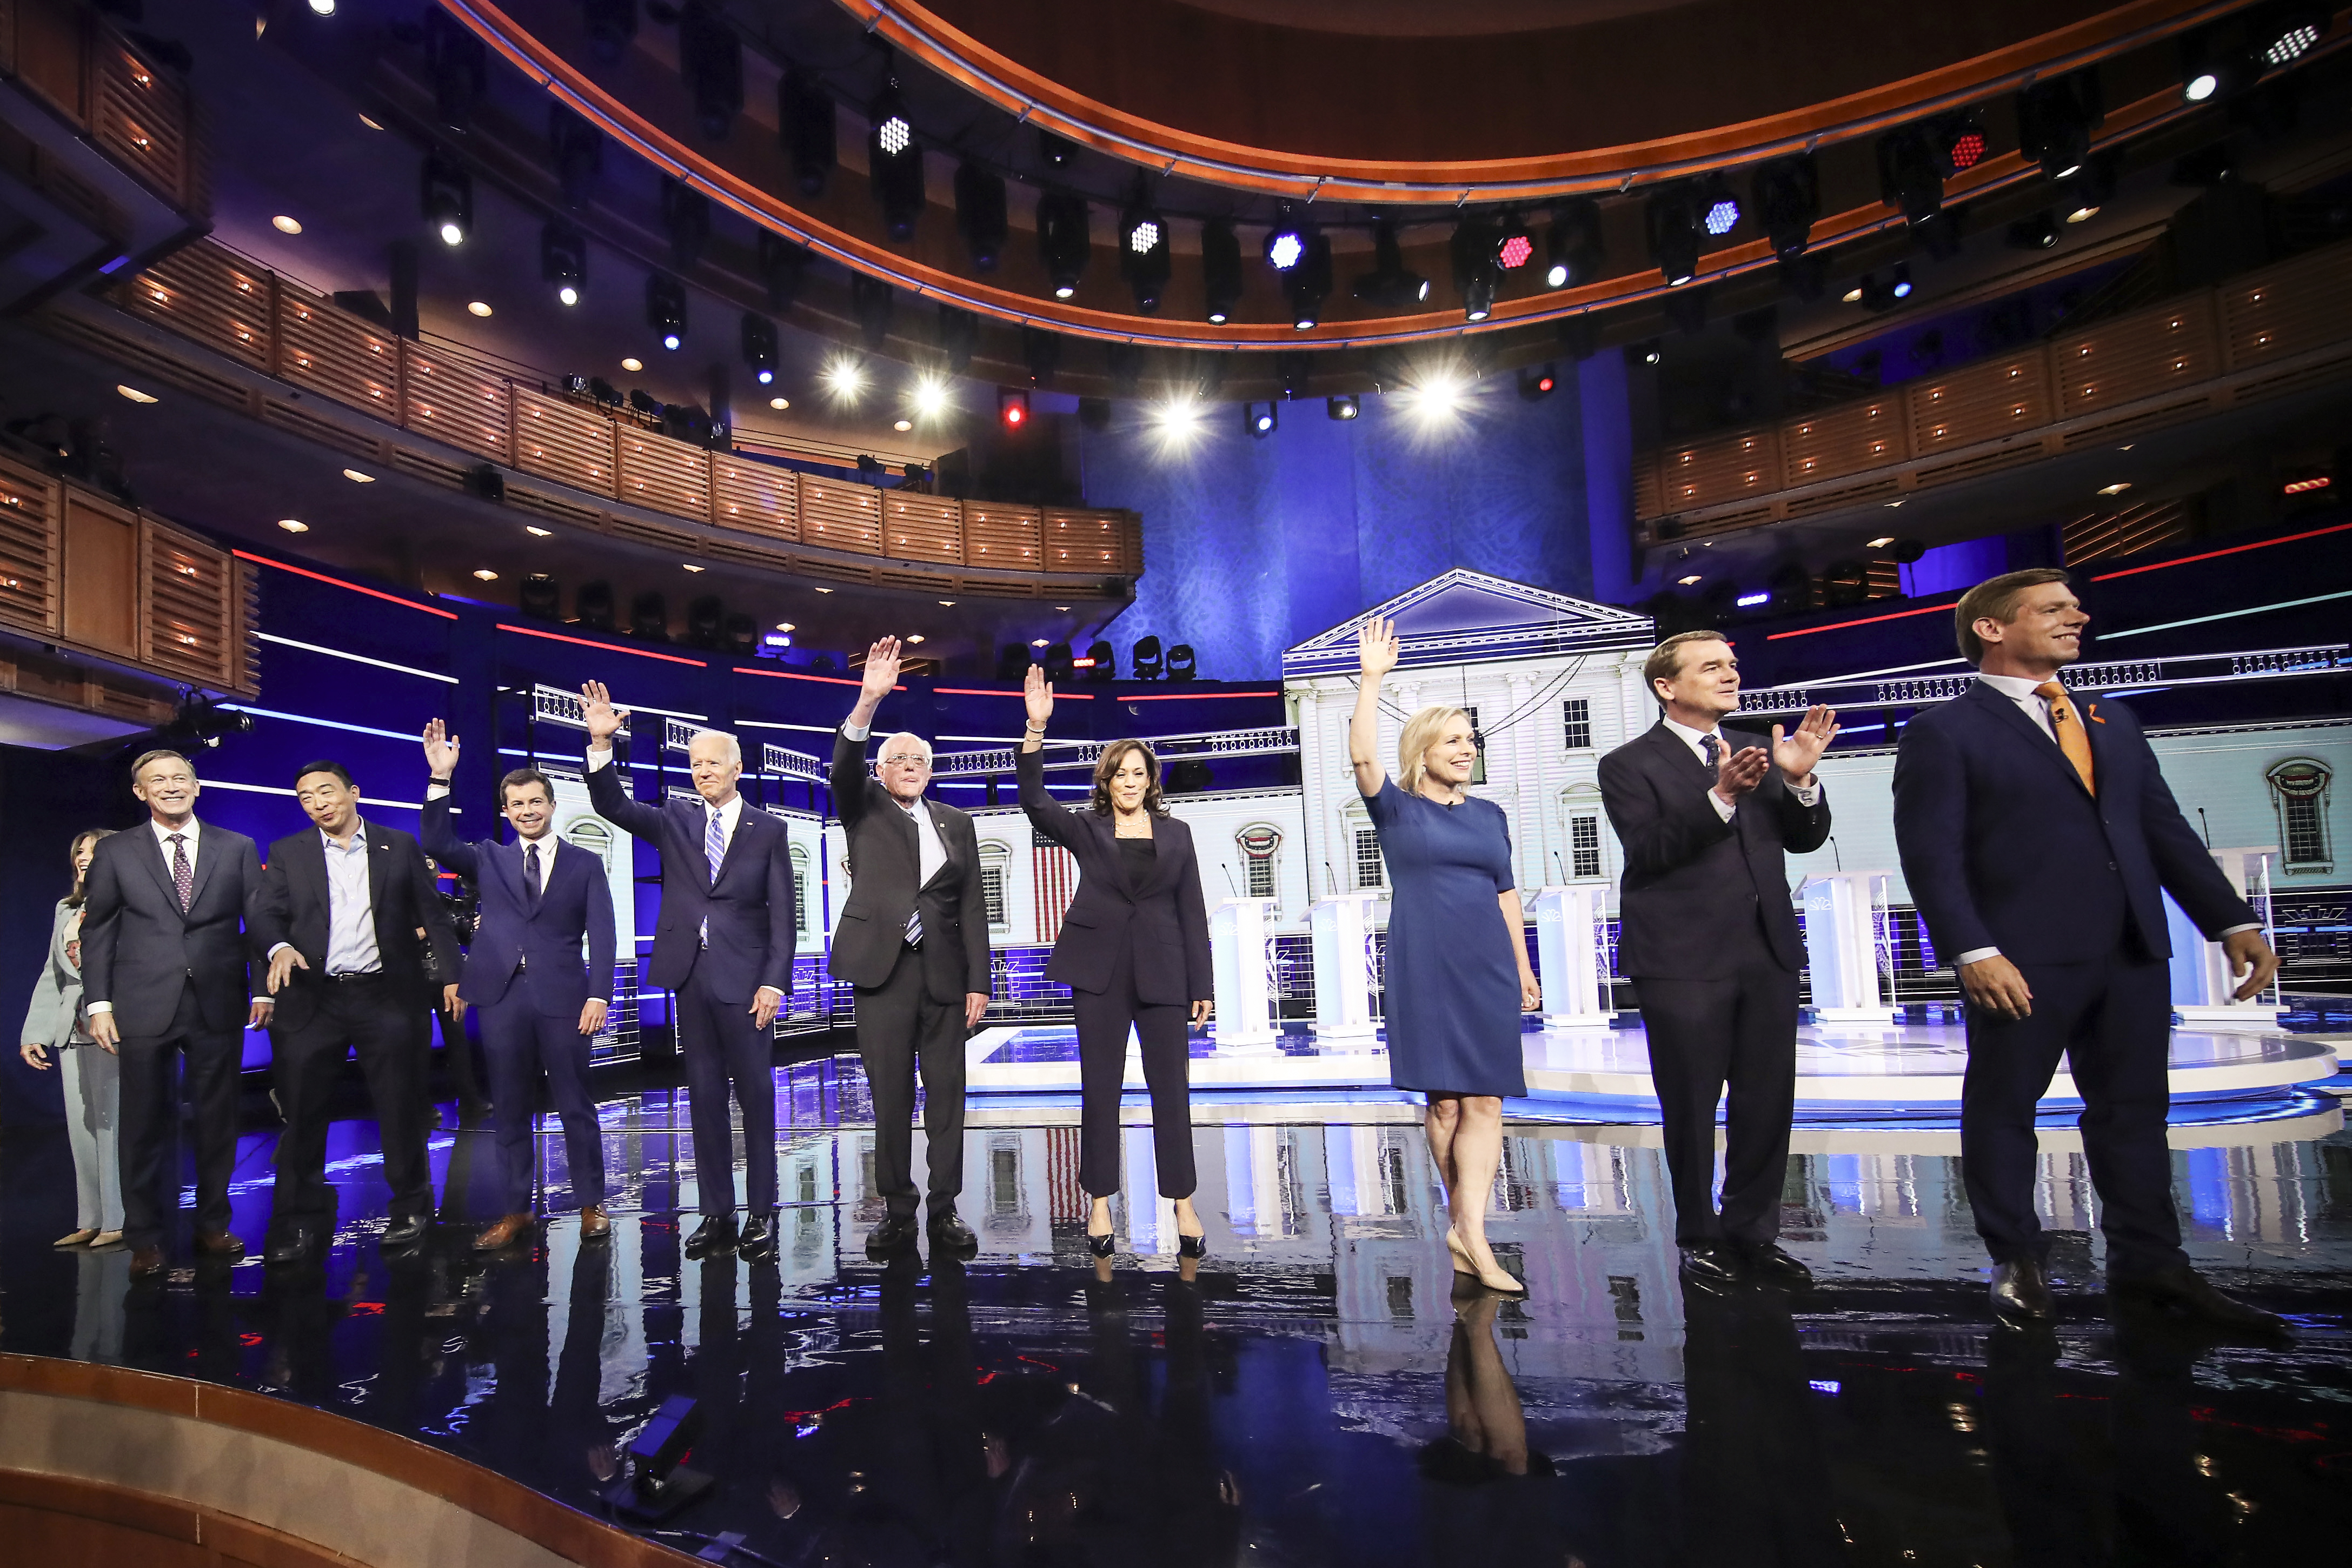 A field of 20 Democratic presidential candidates was split into two groups of 10 for the first debate of the 2020 election.